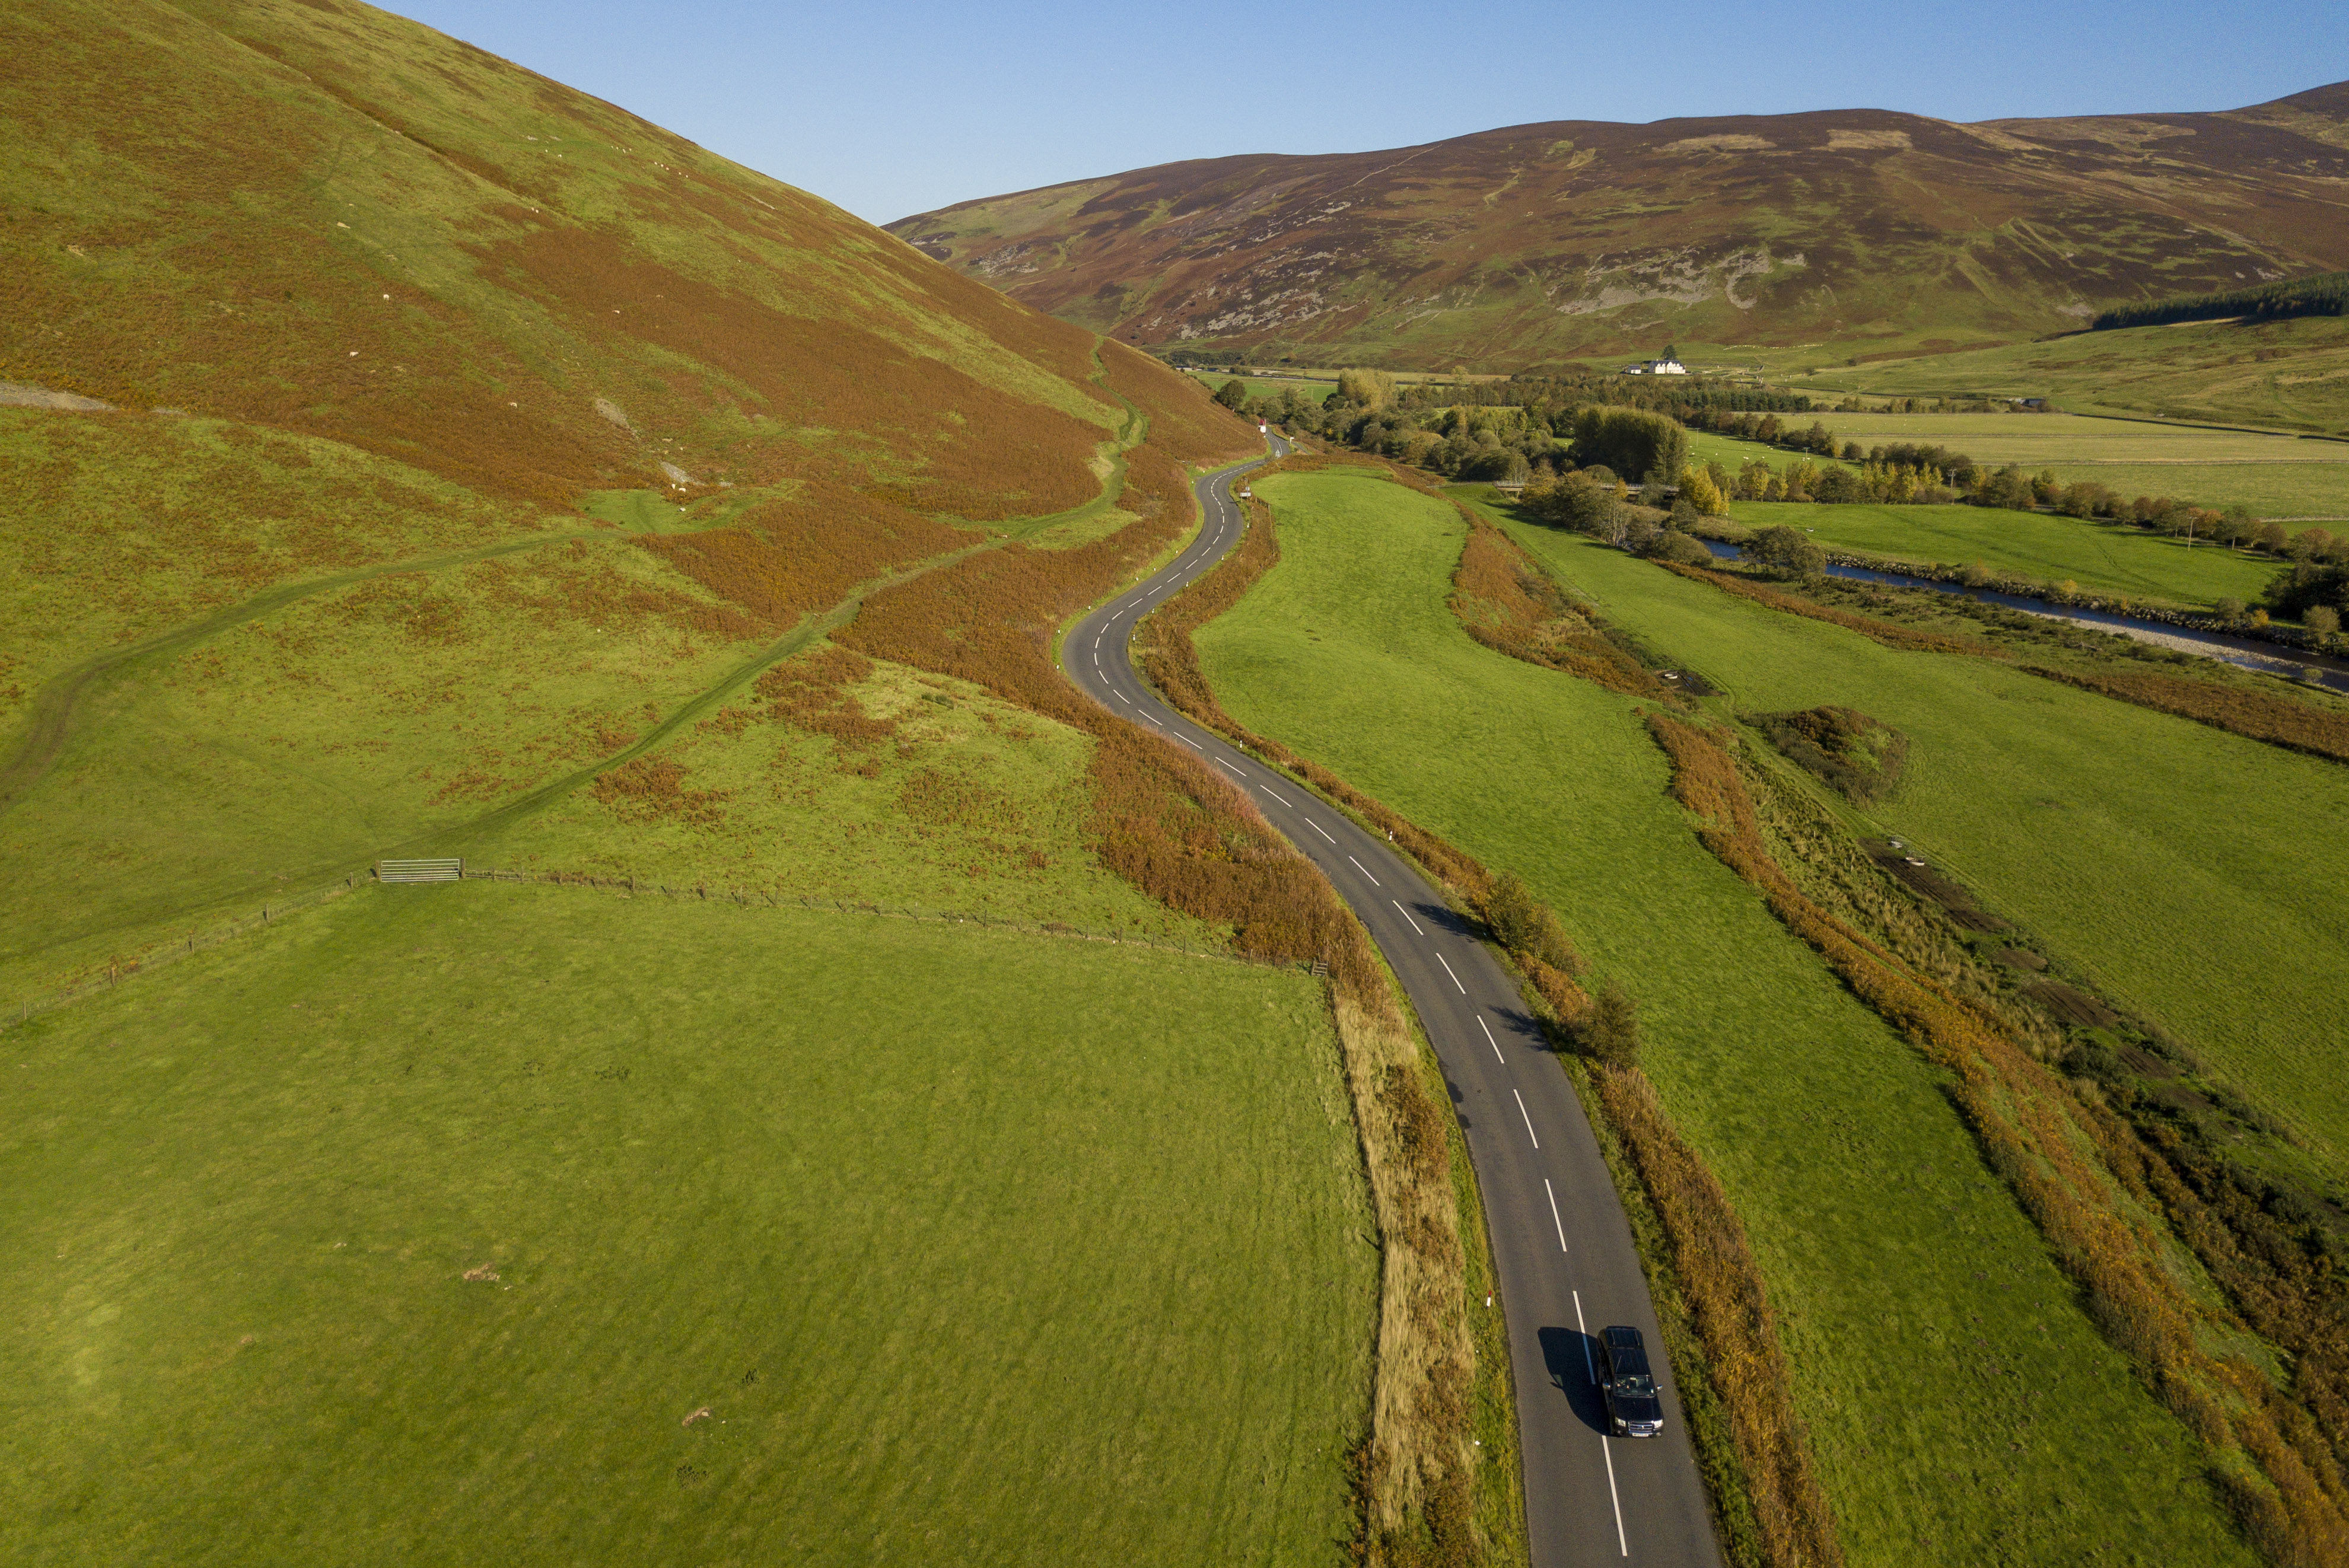 The A701 from Moffat to Edinburgh in the Scottish Borders, which is one of the UKs best driving roads. Oct 10 2018